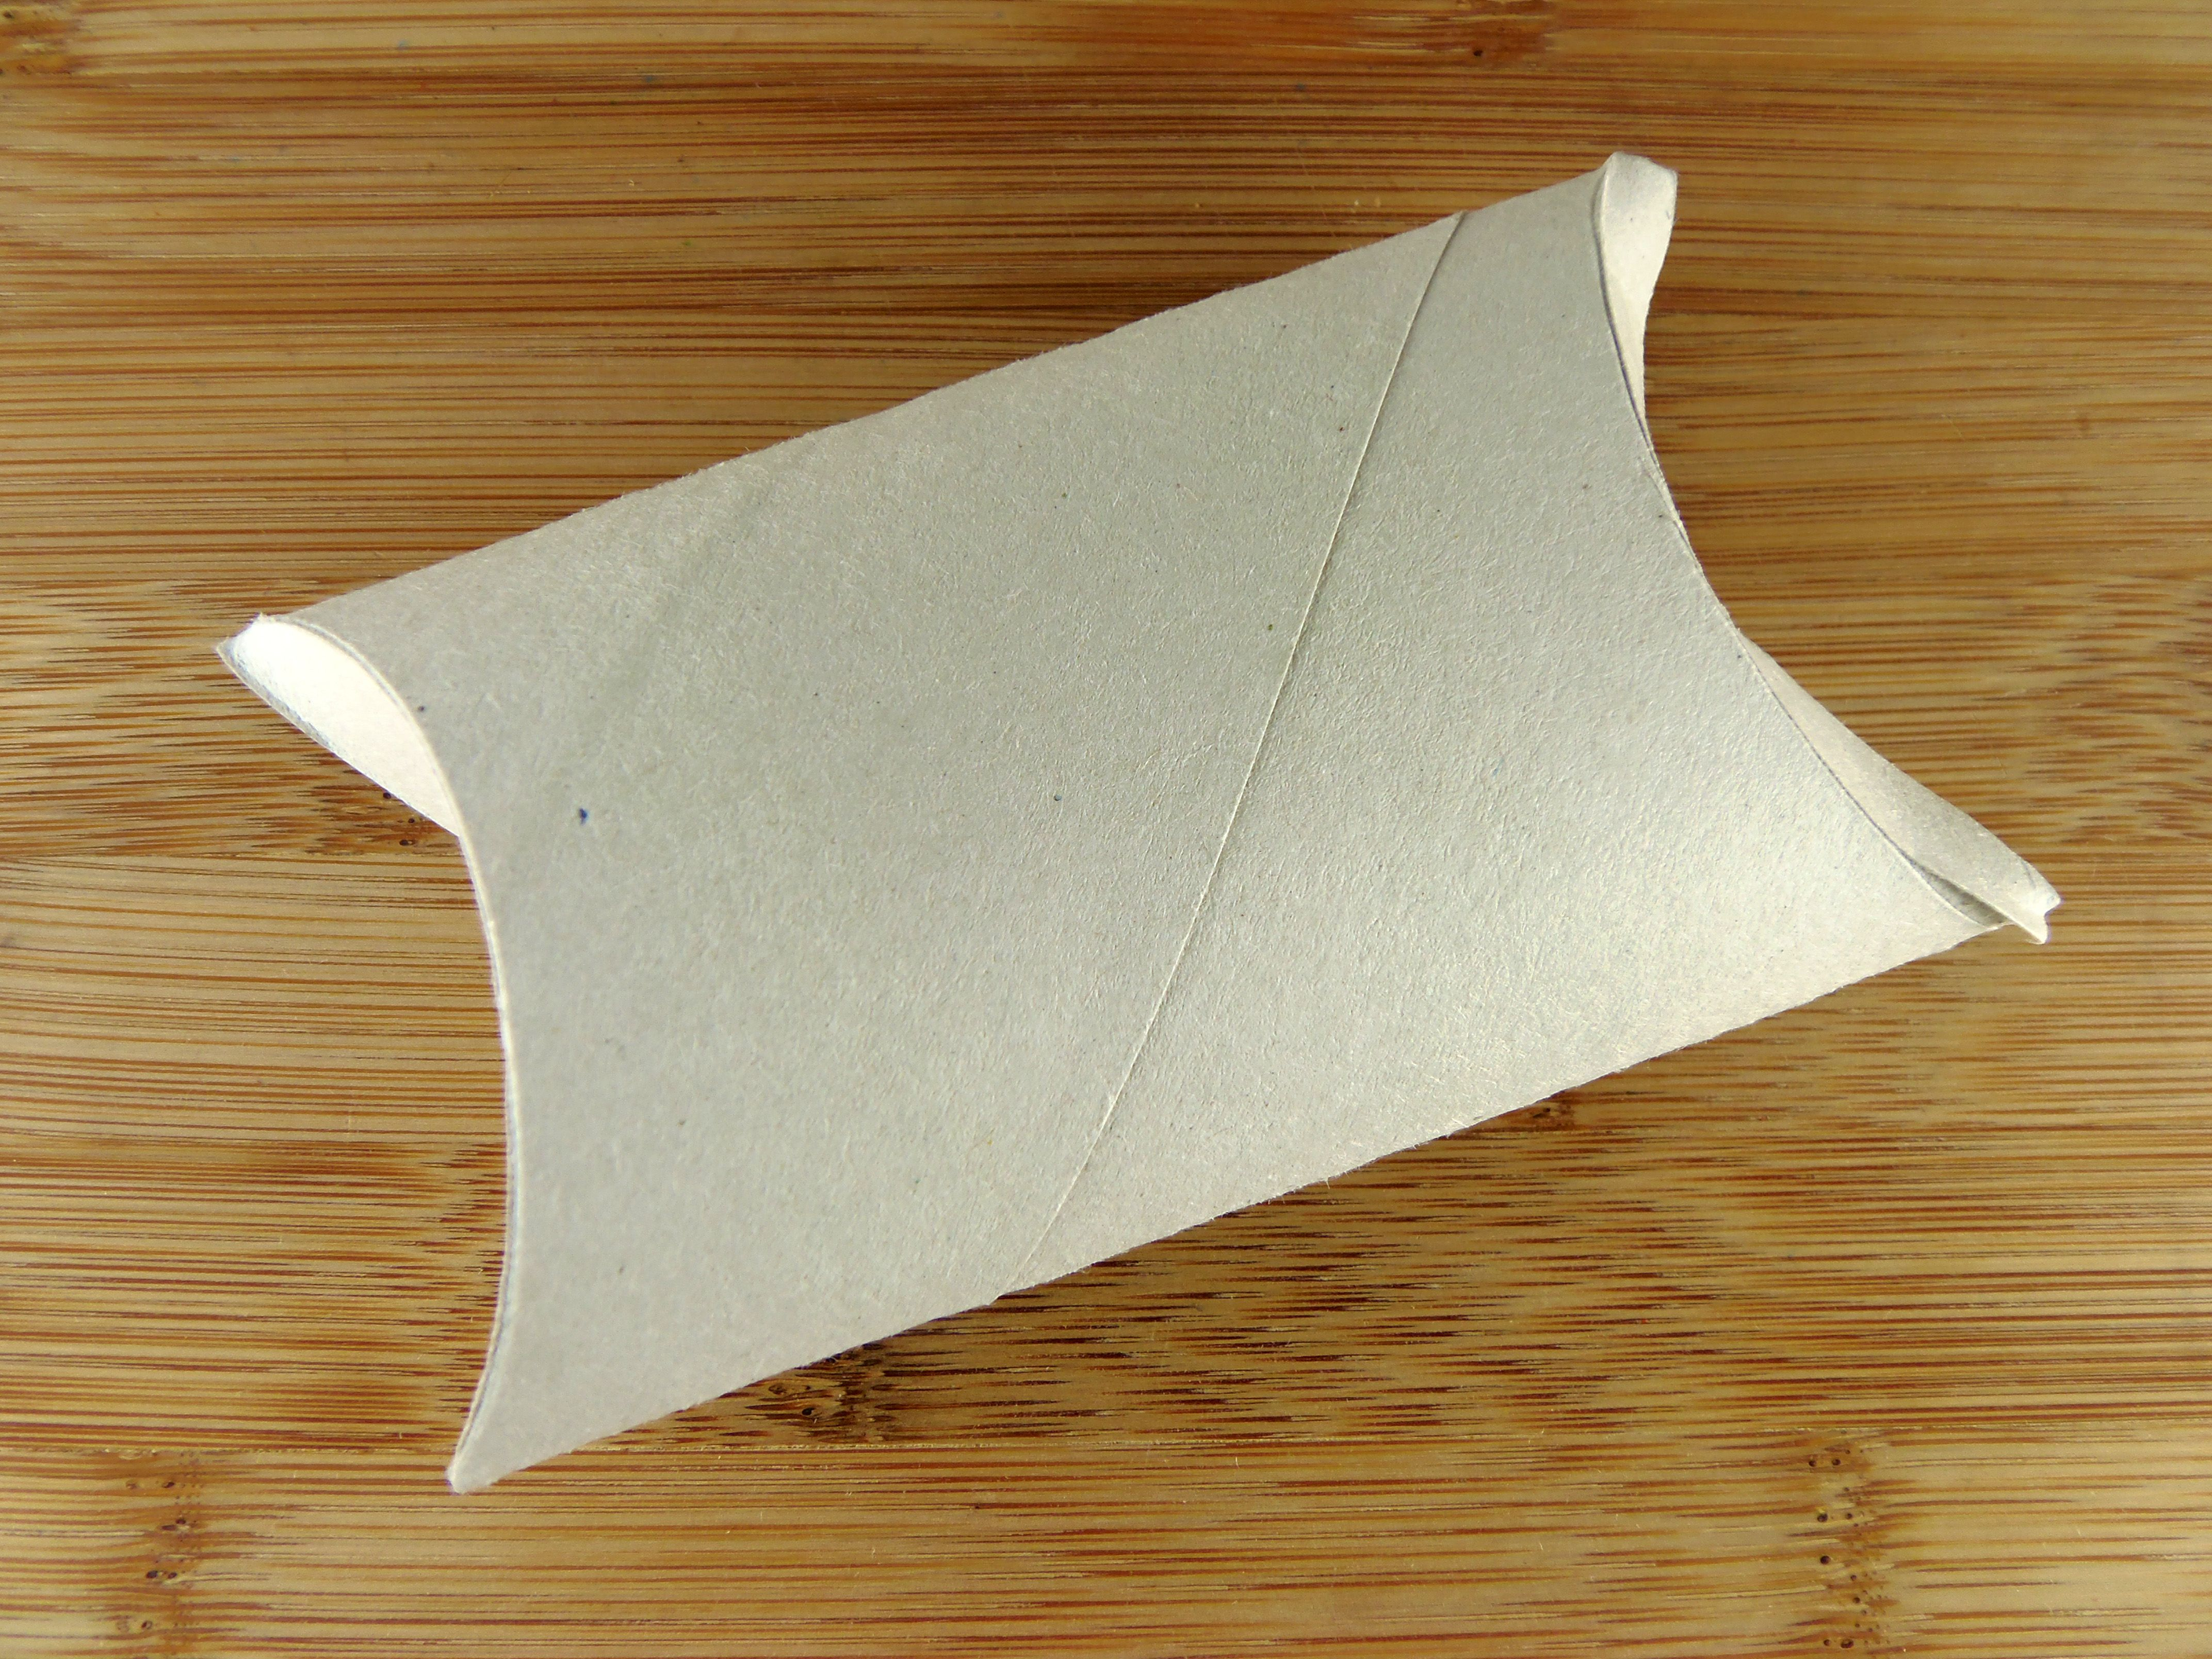 How to Turn a Toilet Paper Roll Into a Pillow Box